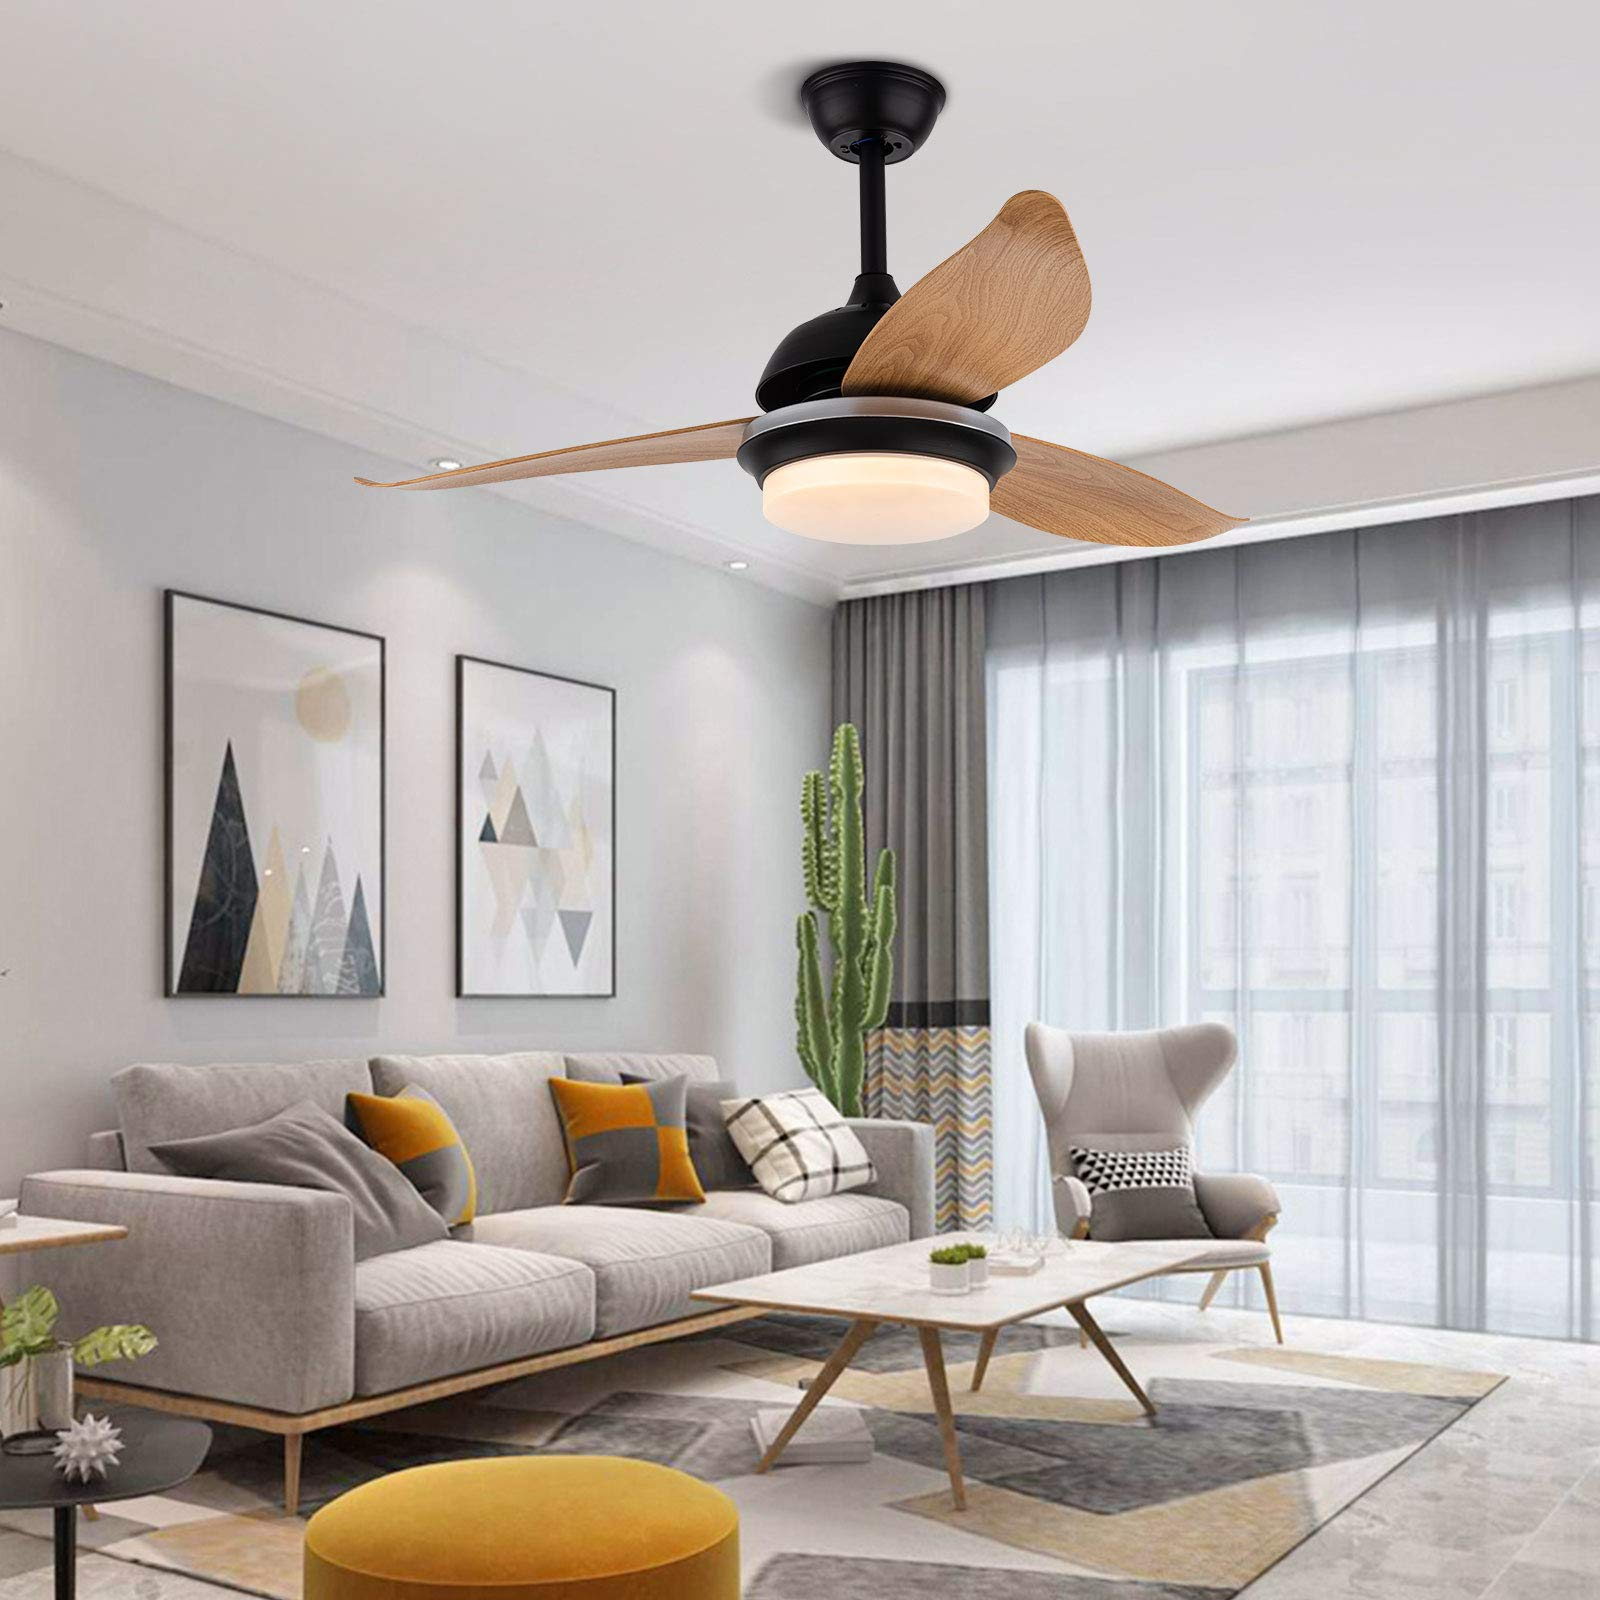 48 Inch Fan Chandelier with Remote Control